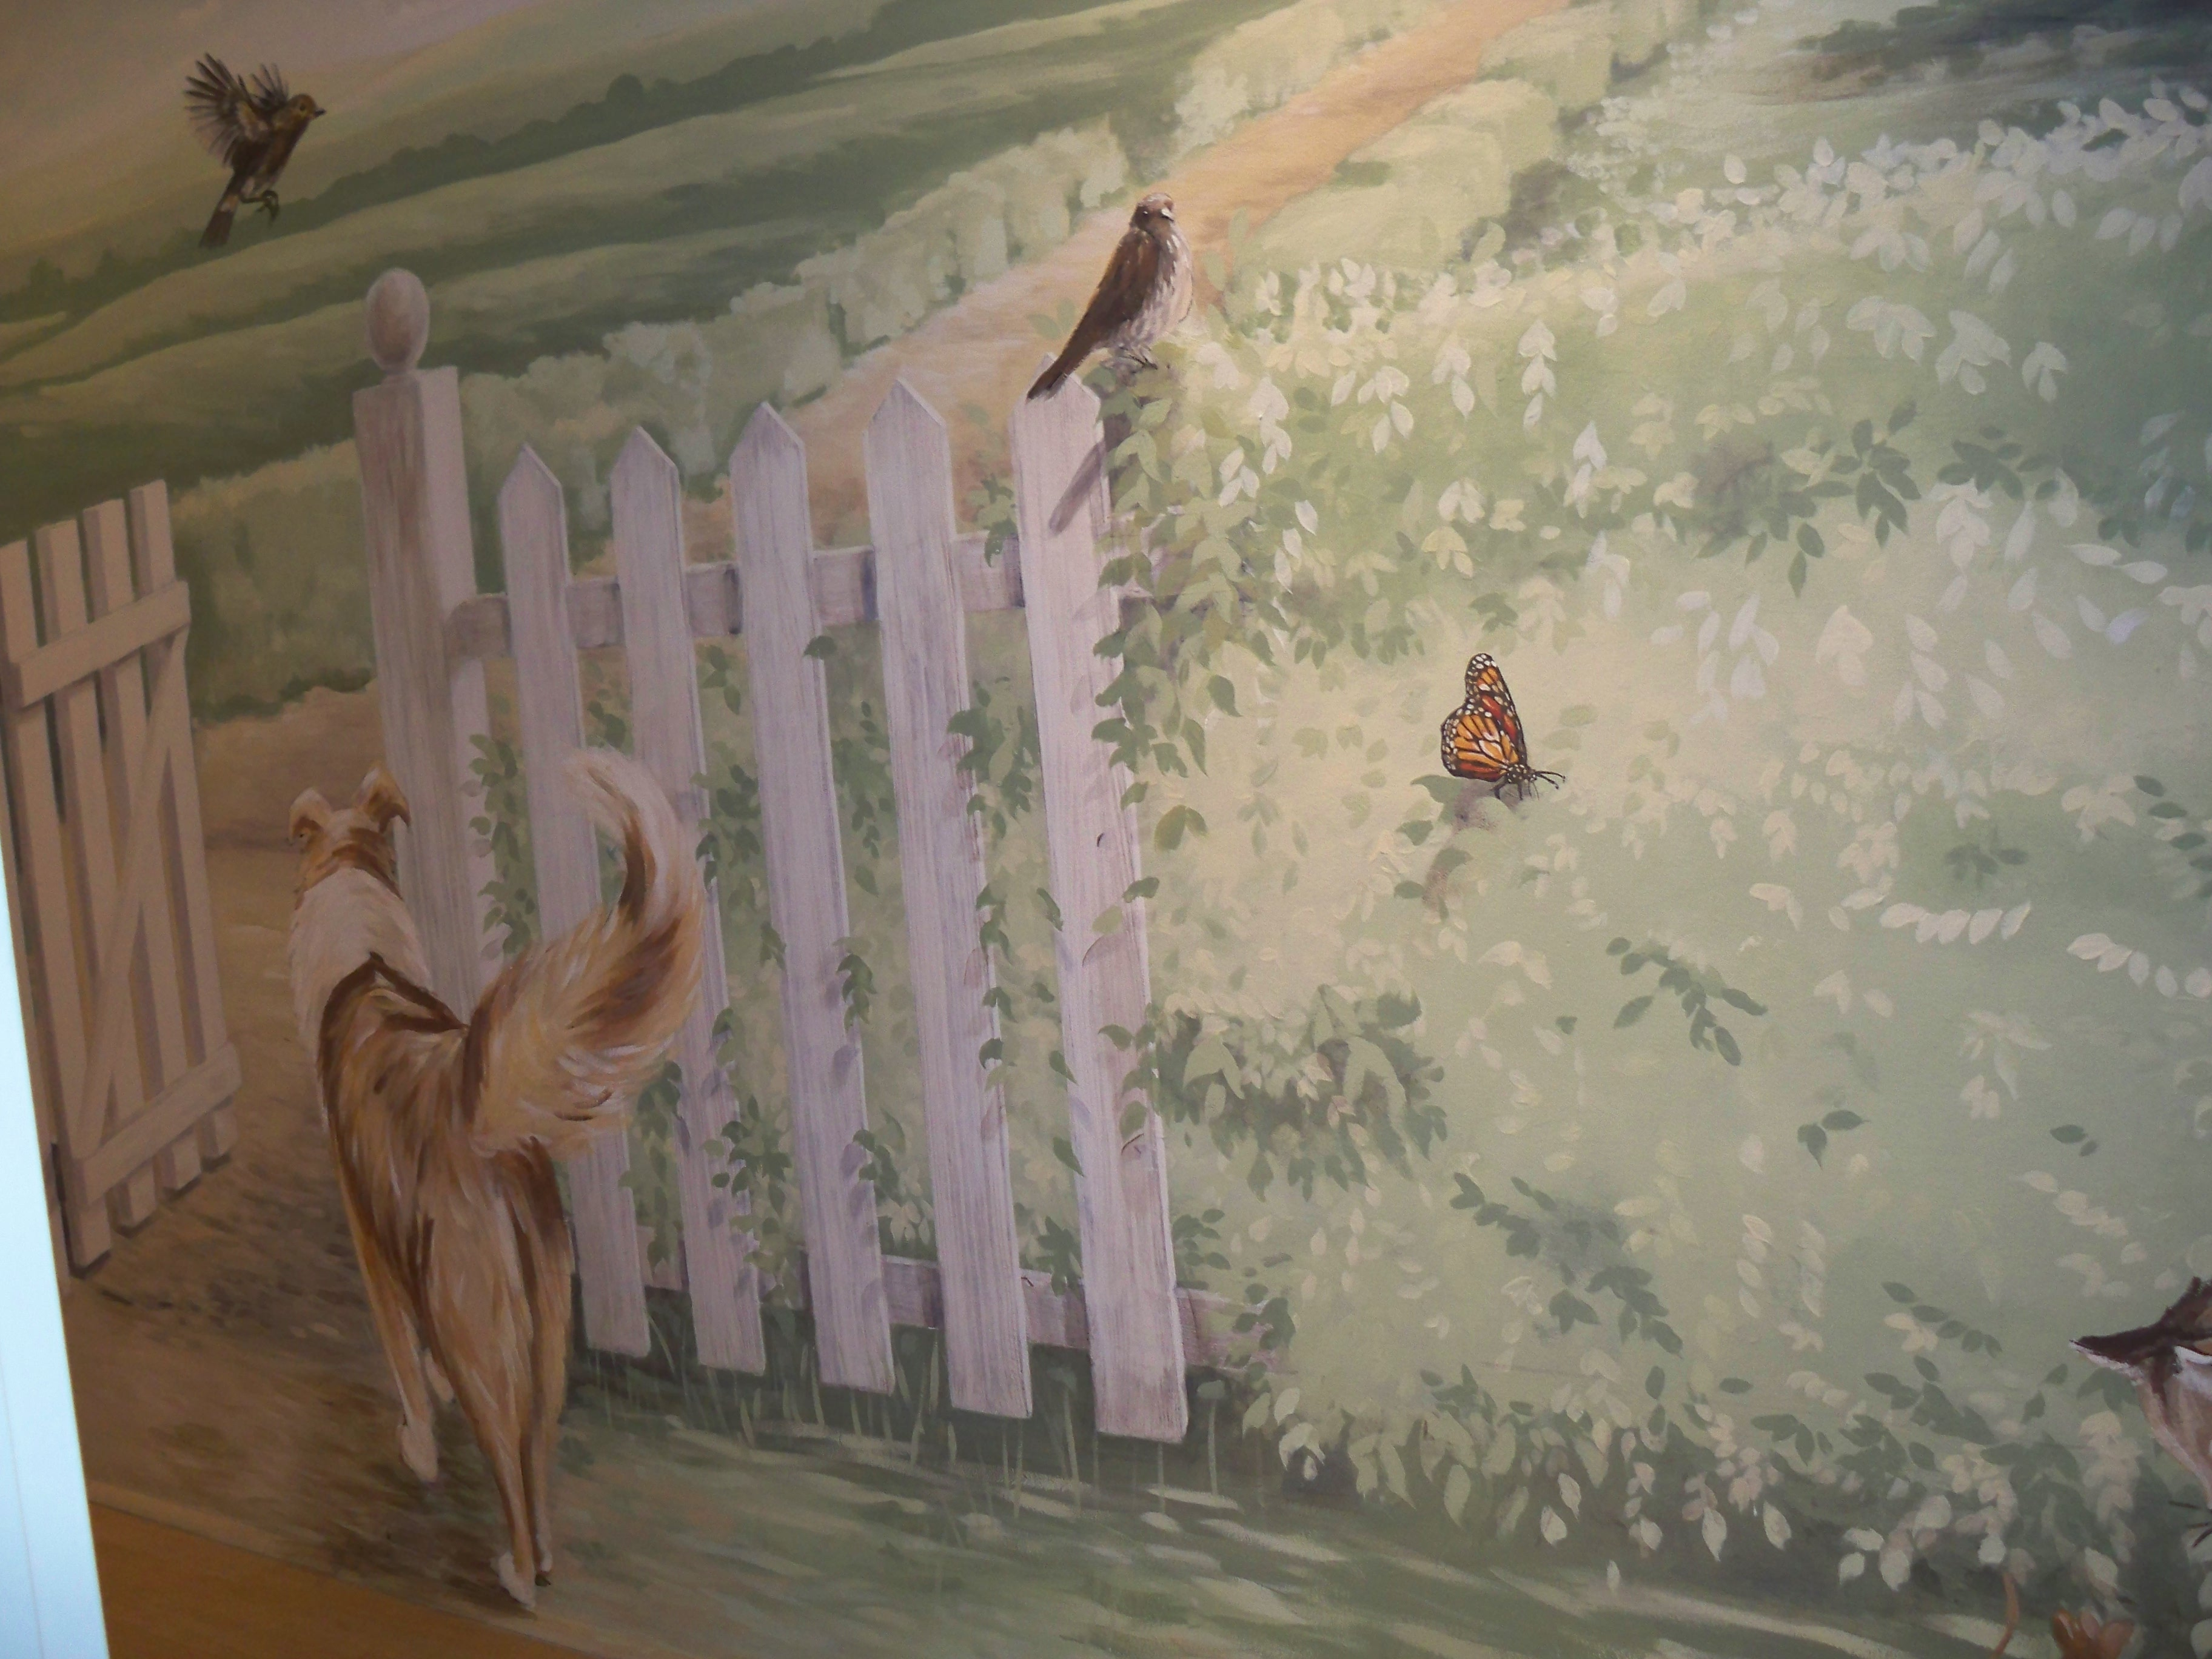 Murals By Marg Becoming Mural 6.JPG